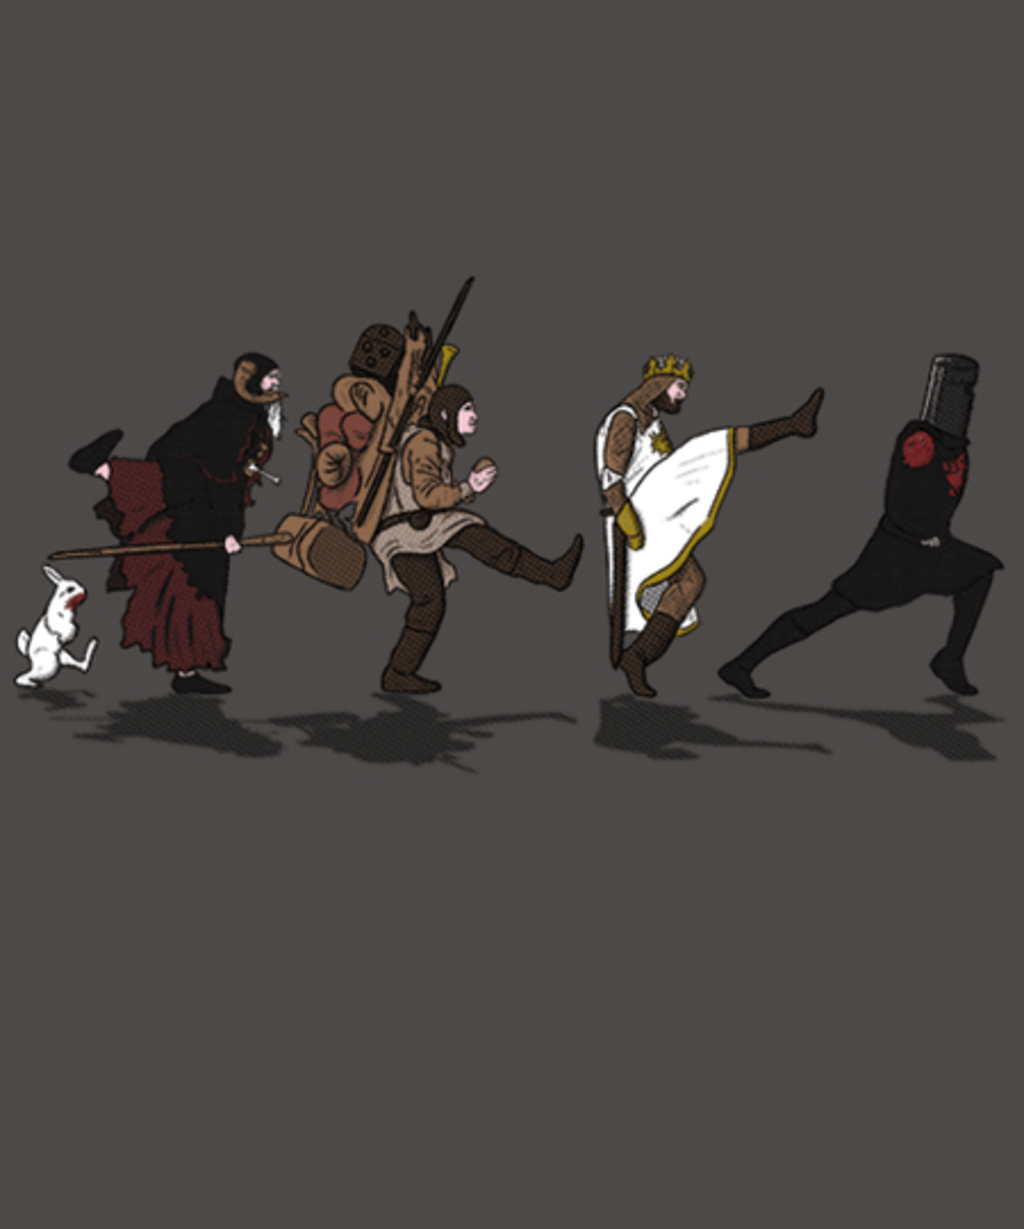 Qwertee: The Quest For The Silly Walk